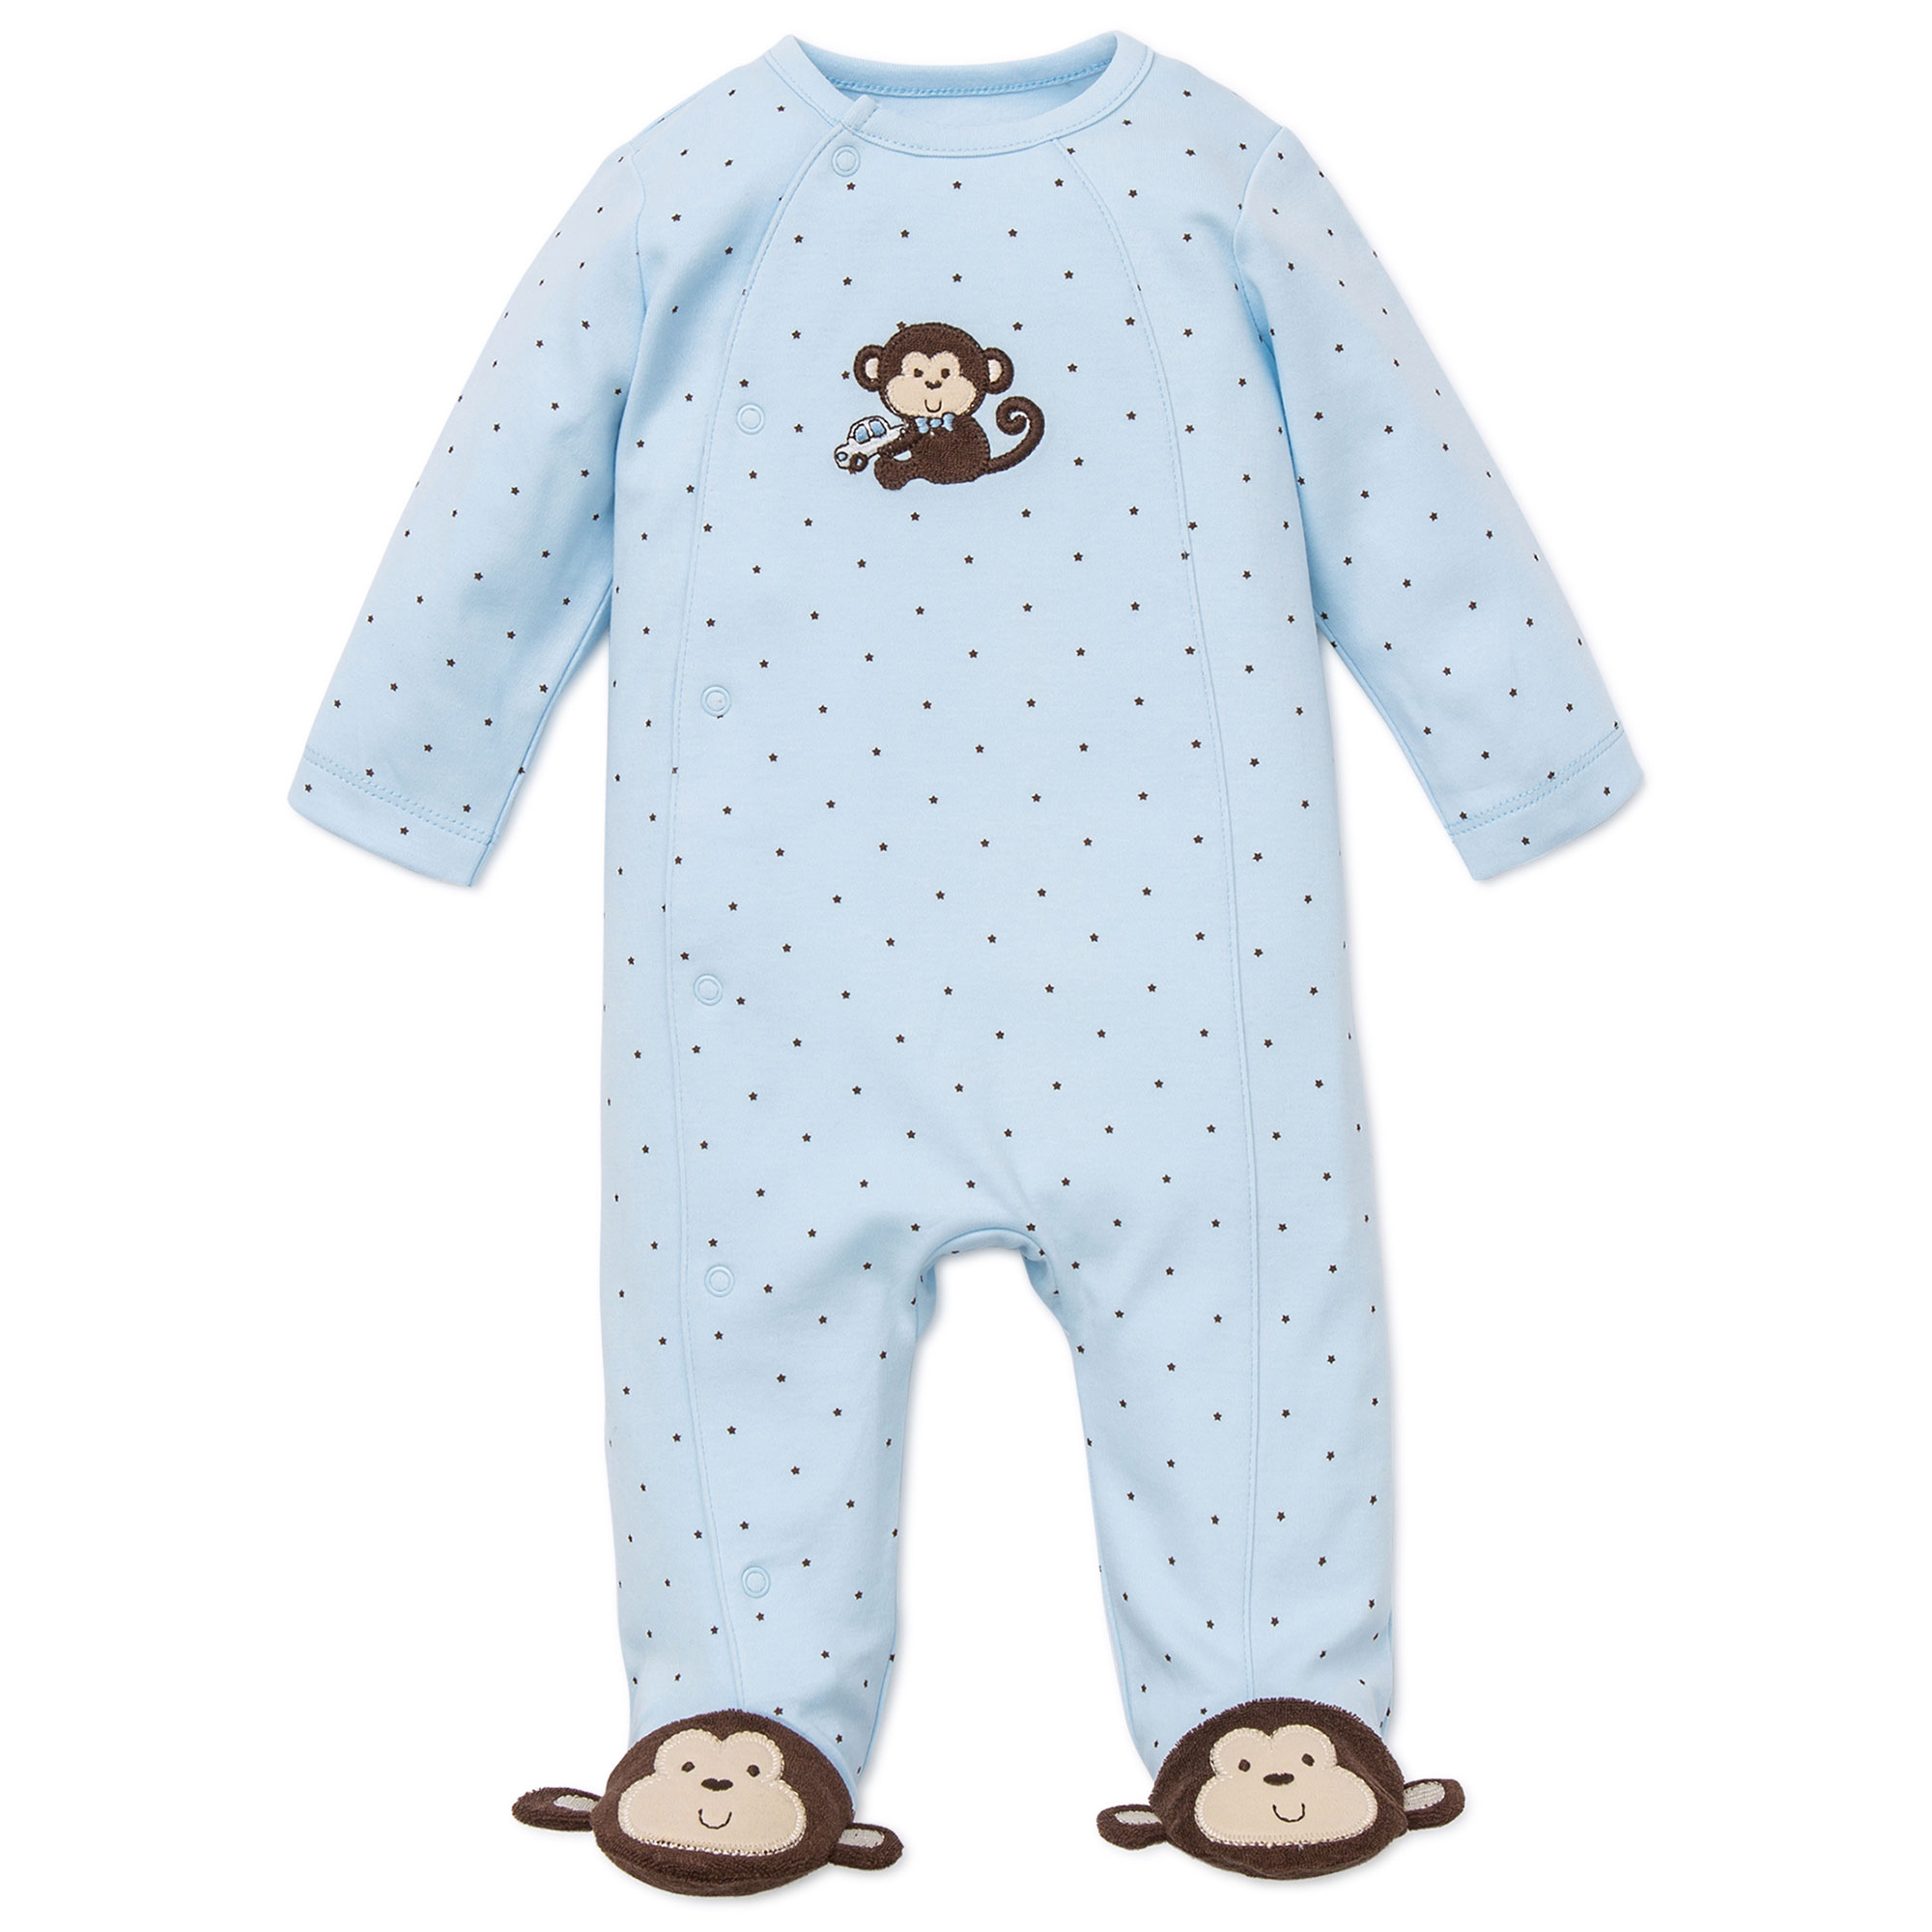 Monkey Star Snap Front Footie Pajamas For Baby with Cute Monkey Feet Boys Sleep N Play One Piece Romper Coverall Cotton Infant Footed Sleeper; Pijamas Para Bebes - Blue - Preemie